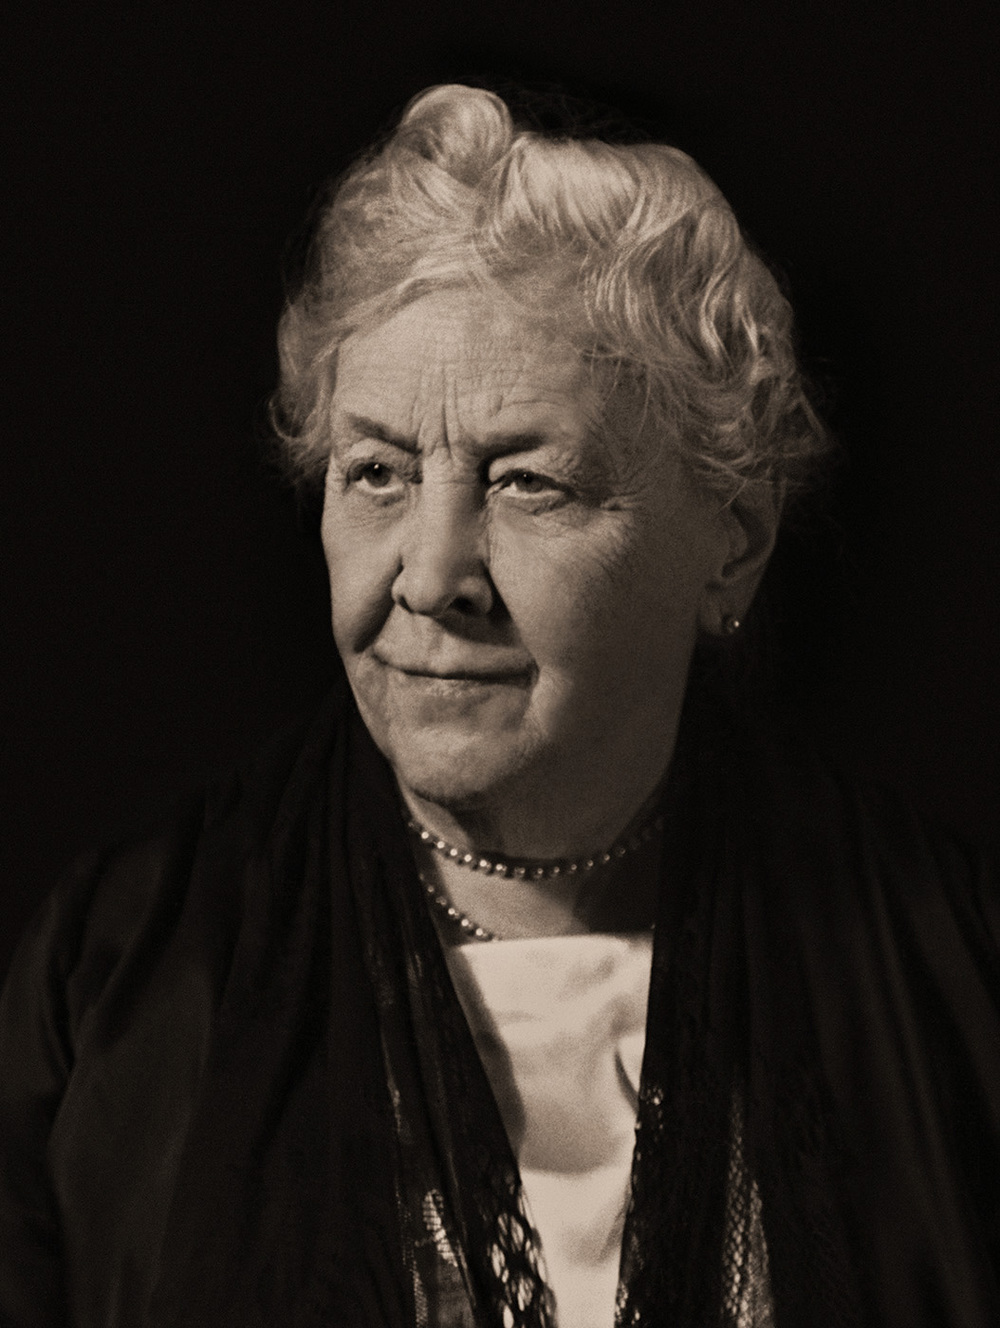 Sara Delano Roosevelt, mother of FDR, 1939